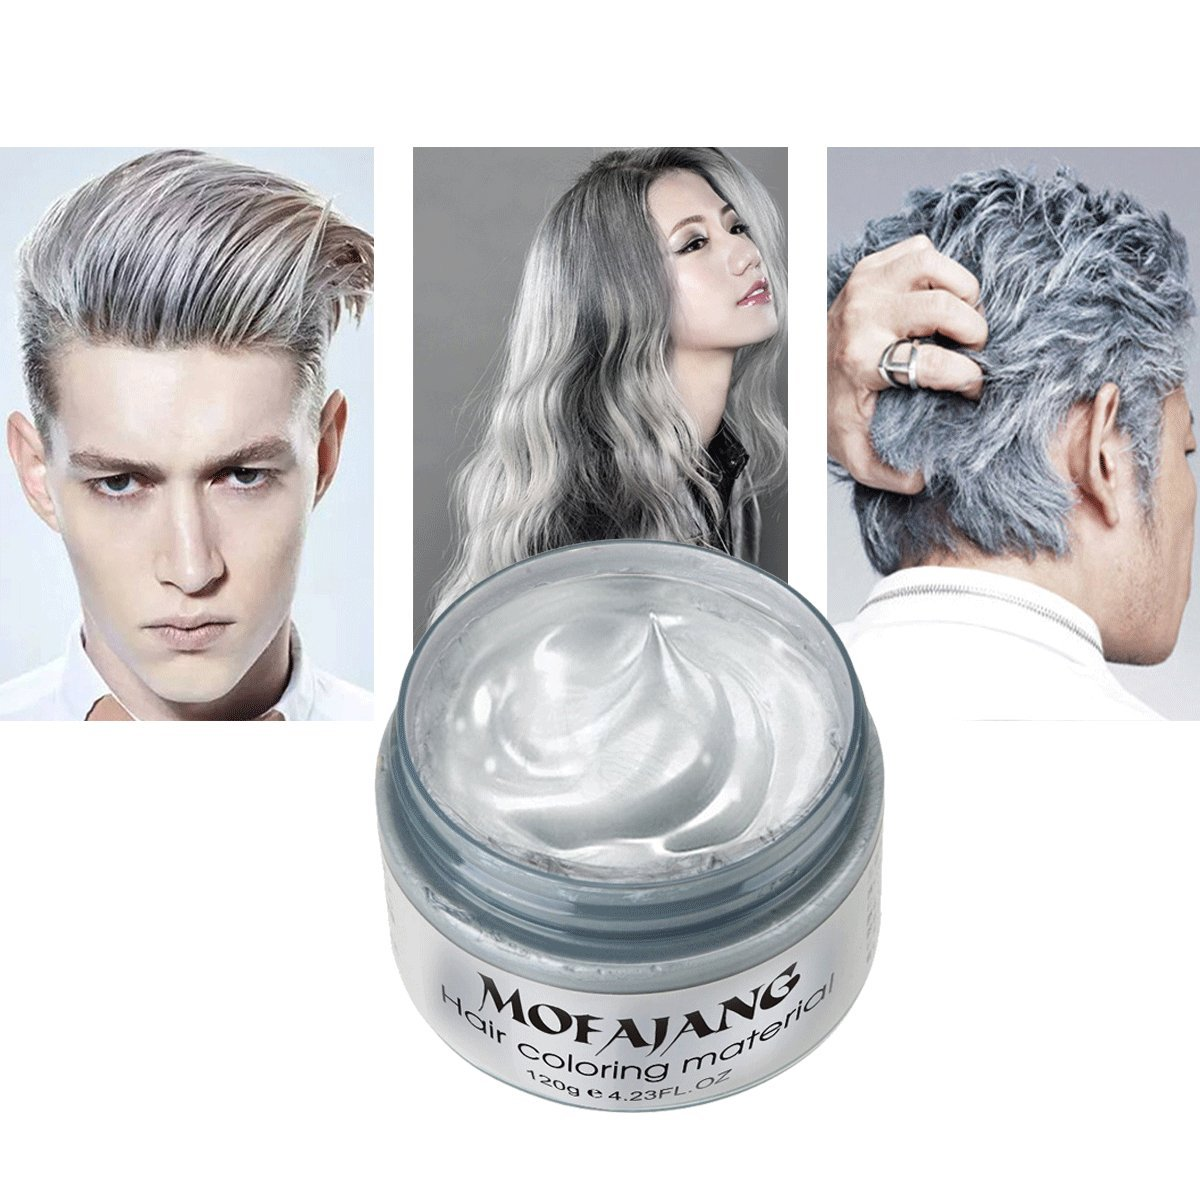 TailaiMei Temporary Silver Gray Hair Wax 4.23oz Instant Hairstyle Mud Cream Hair Pomades for Party Cosplay Nightclub Masquerade Halloween.